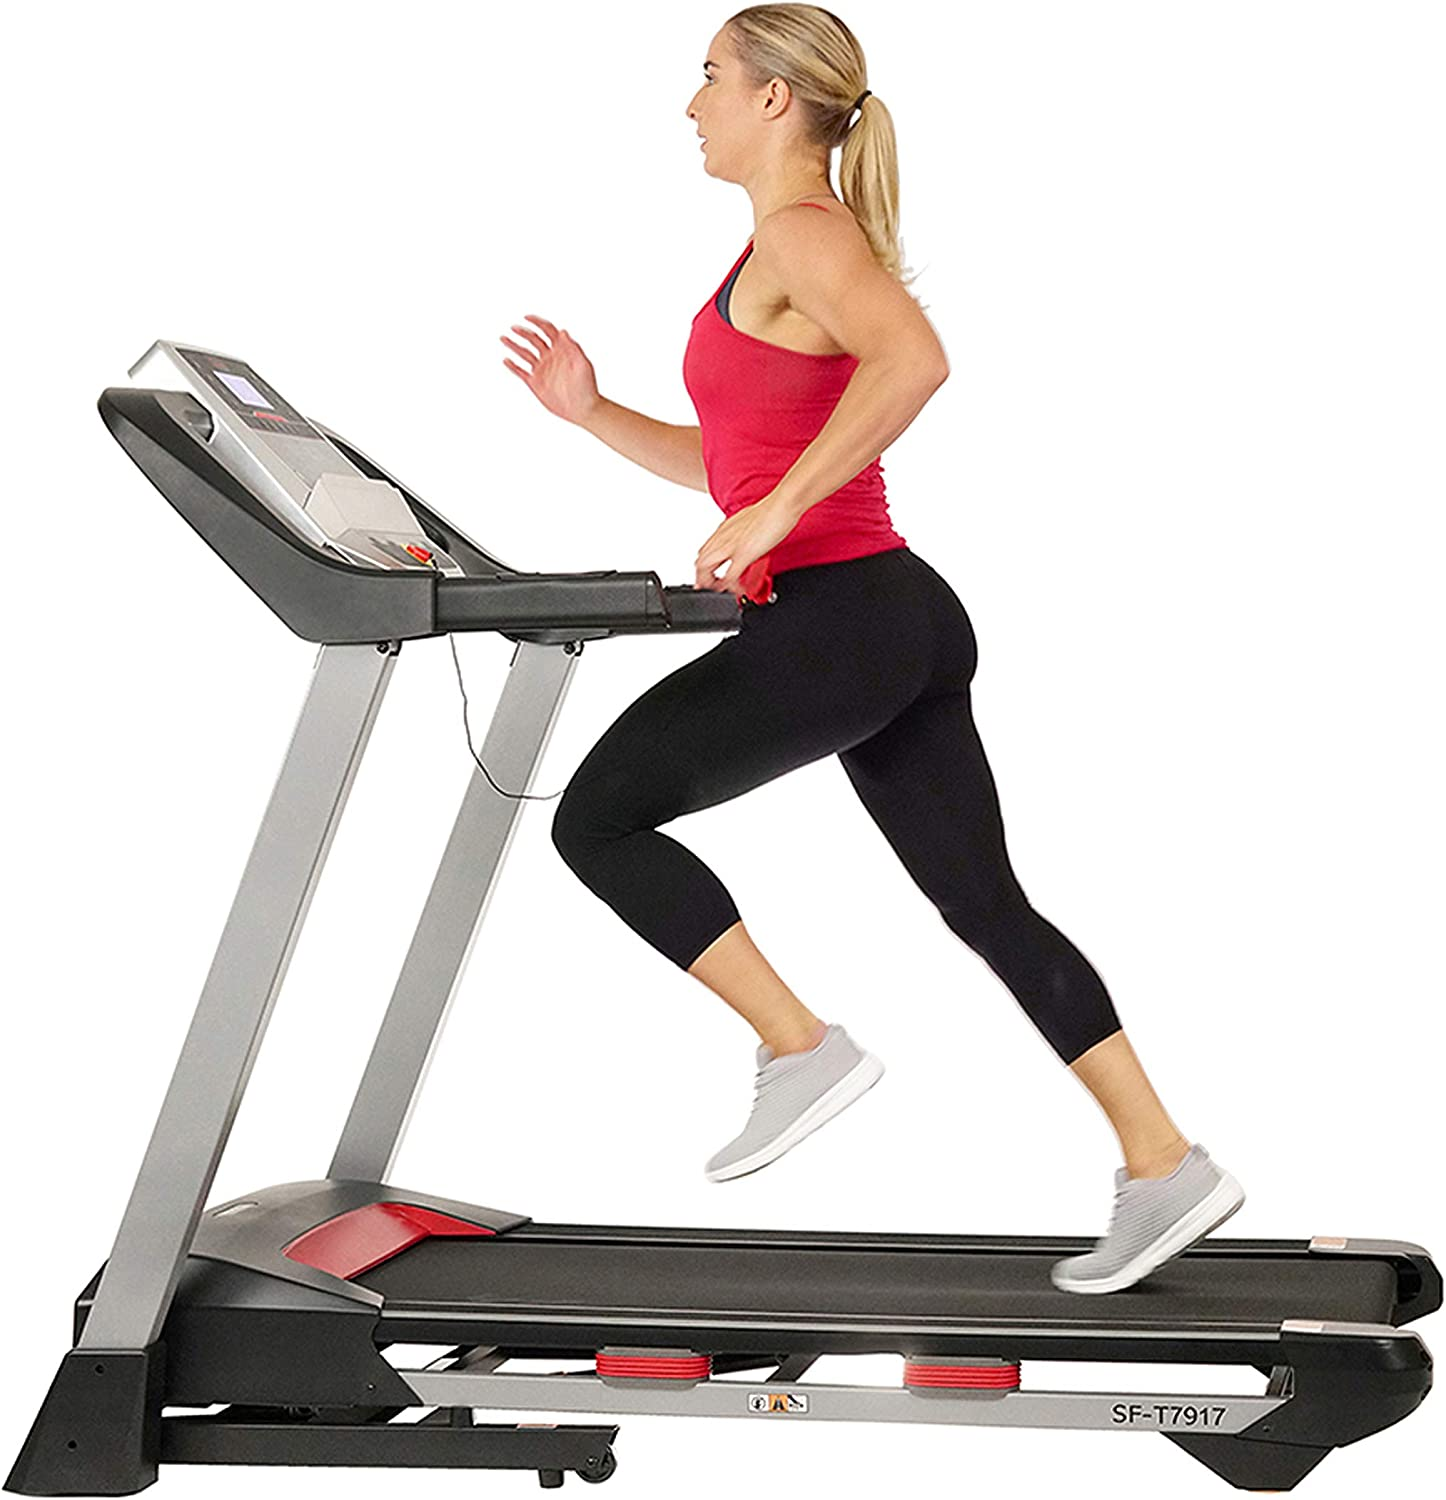 Amazon.com : Sunny Health & Fitness Folding Treadmill for Home Exercise  with 265 LB Capacity, Device Holder, Bluetooth Speakers and USB Charging -  SF-T7917 : Sports & Outdoors